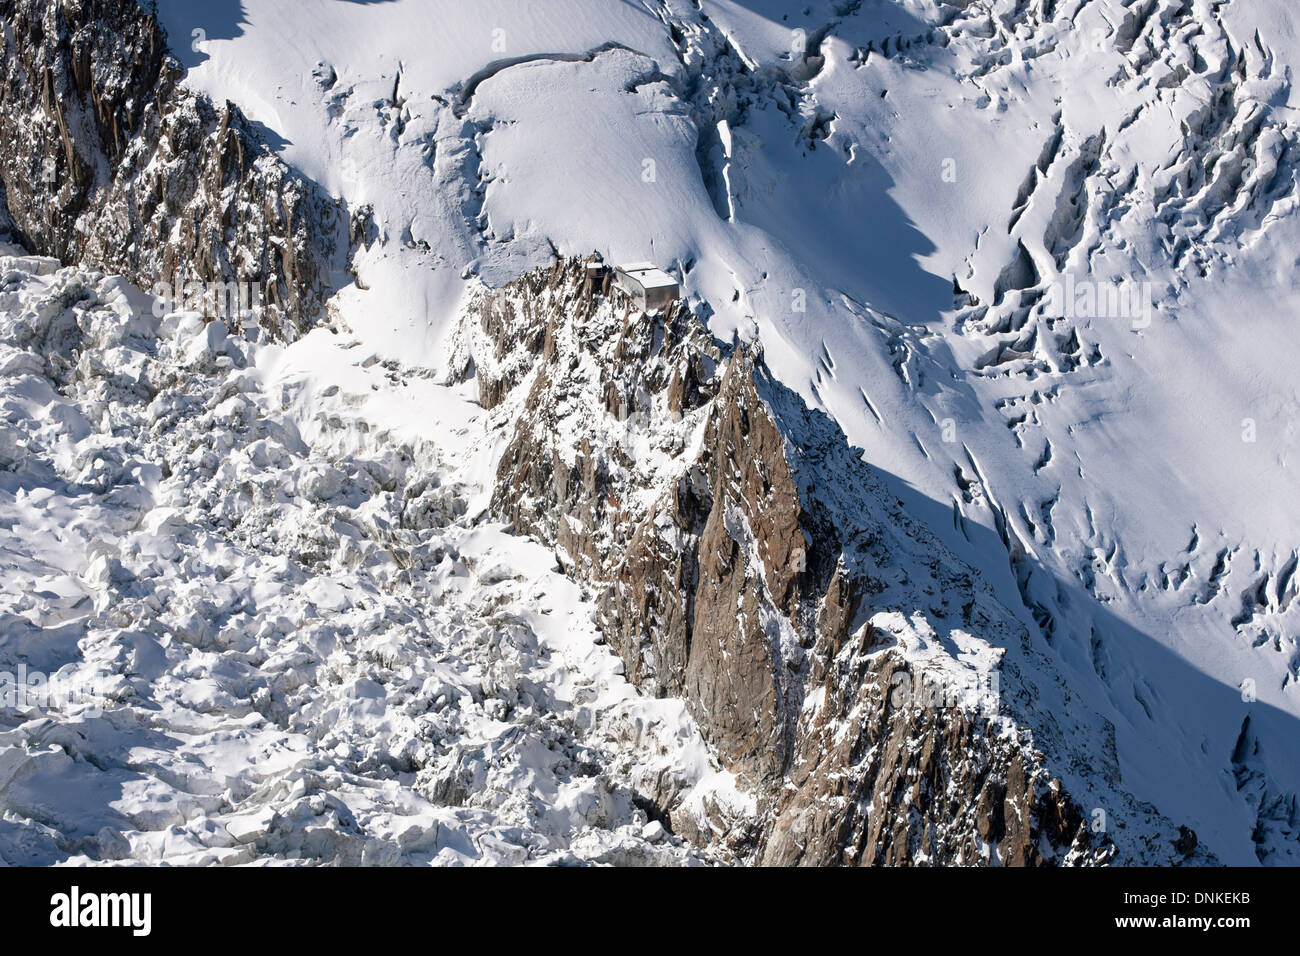 LES GRANDS MULETS MOUNTAIN HUT (aerial view). Hut perched precariously on granite needles and surrounded by steep glaciers. - Stock Image